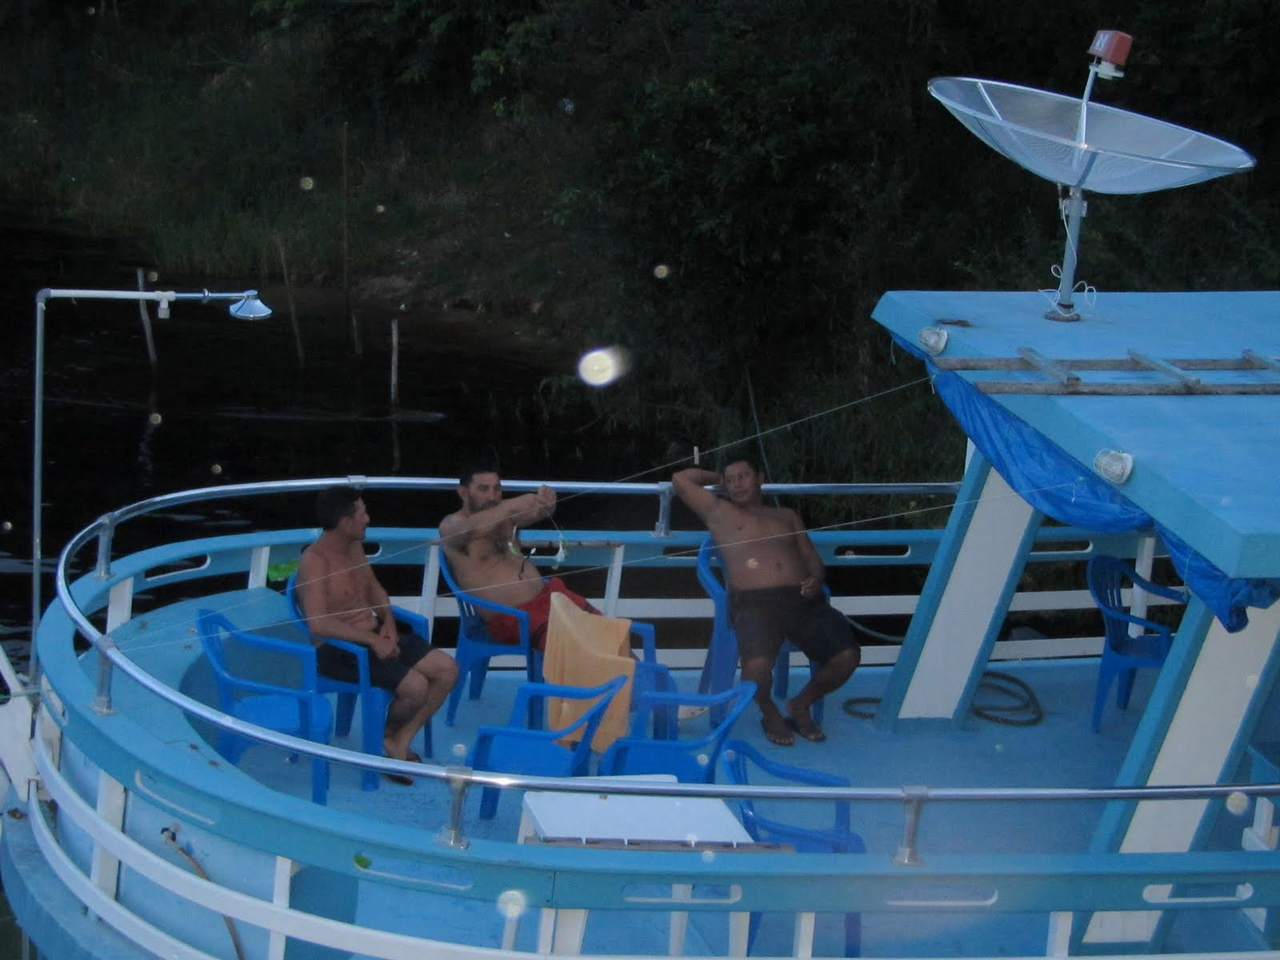 The crew chilling out on their boat